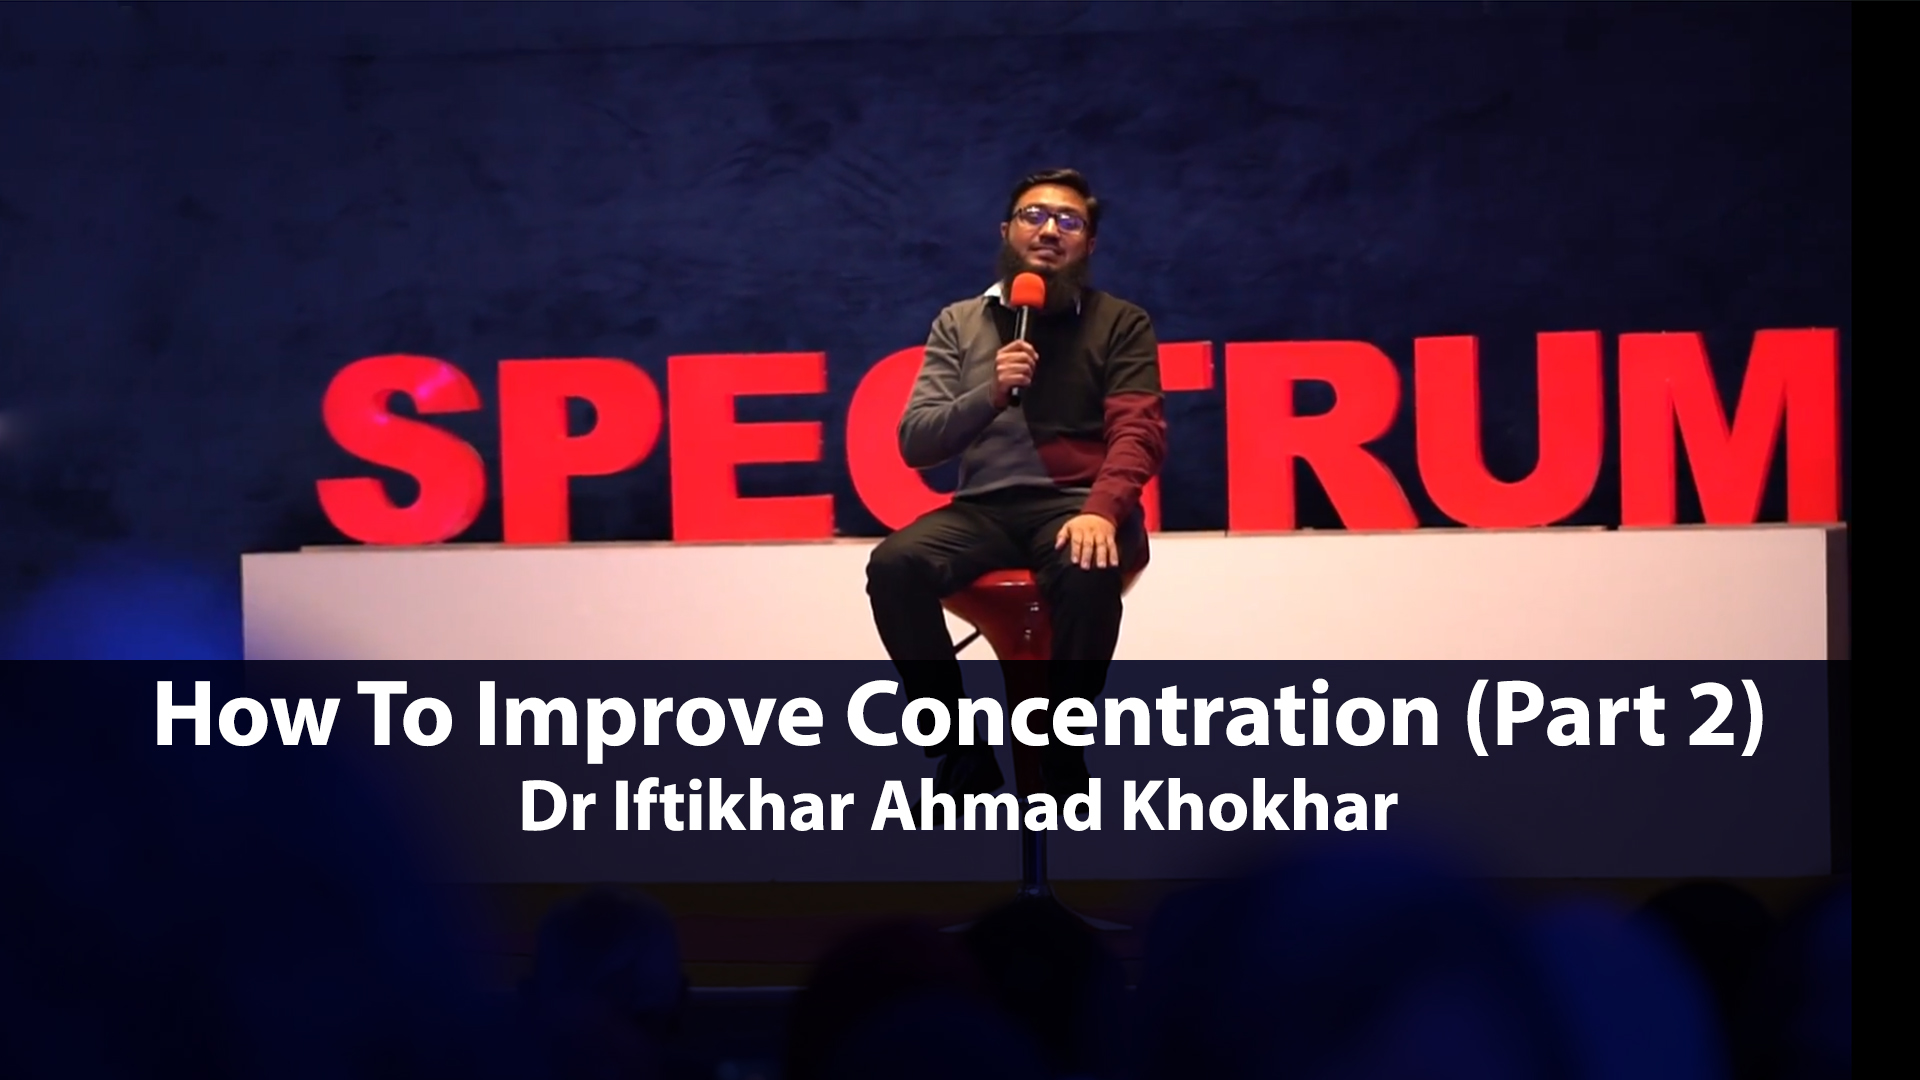 How To Improve Concentration (Part 2)